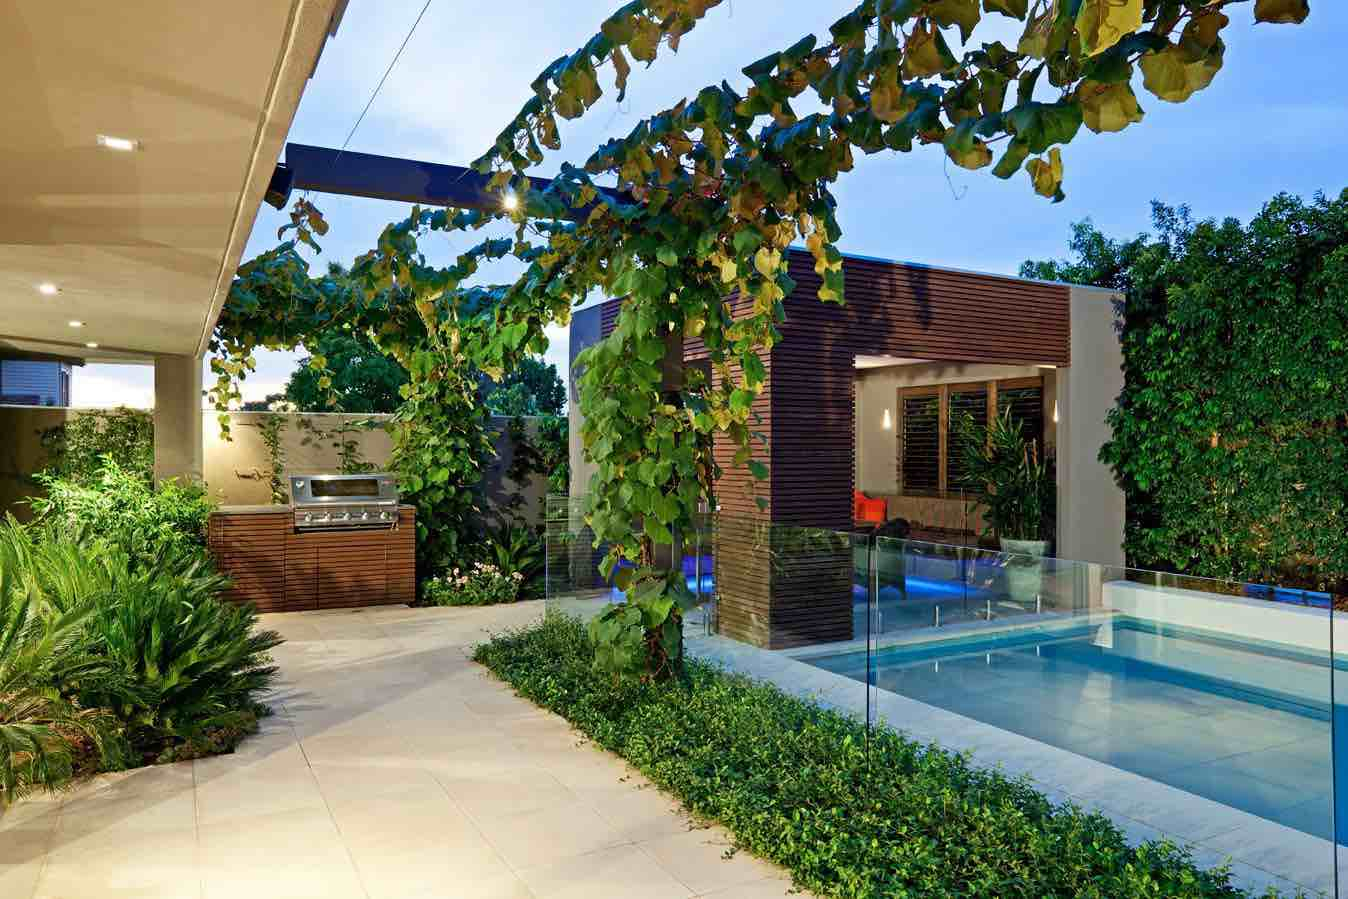 41 backyard design ideas for small yards worthminer for Backyard landscaping design ideas small yards